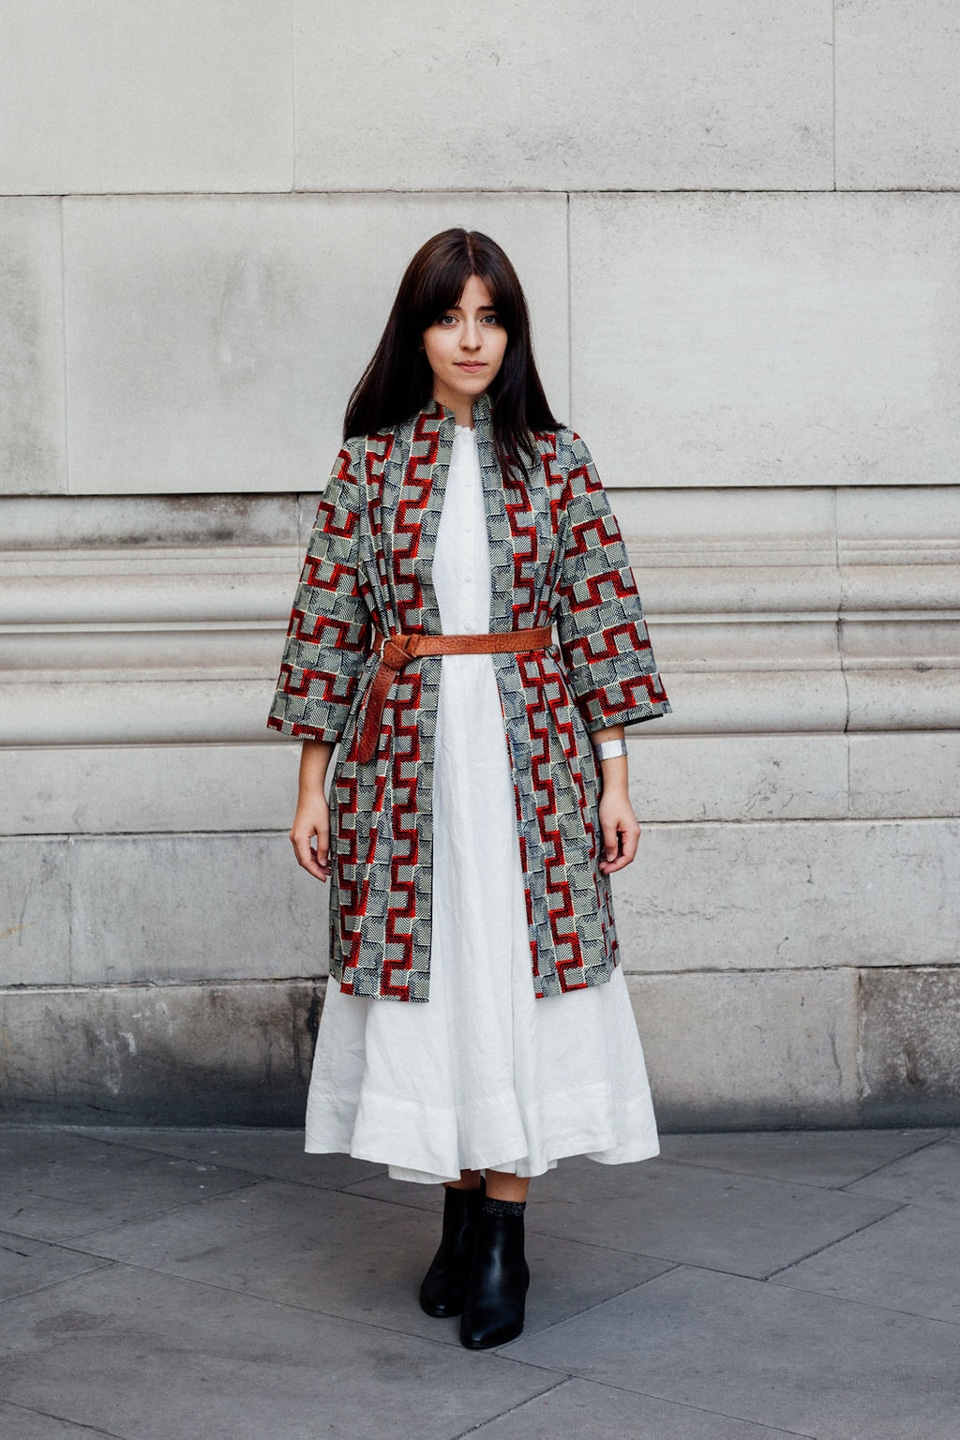 Besma wears white dress with printed longline jacket and belt